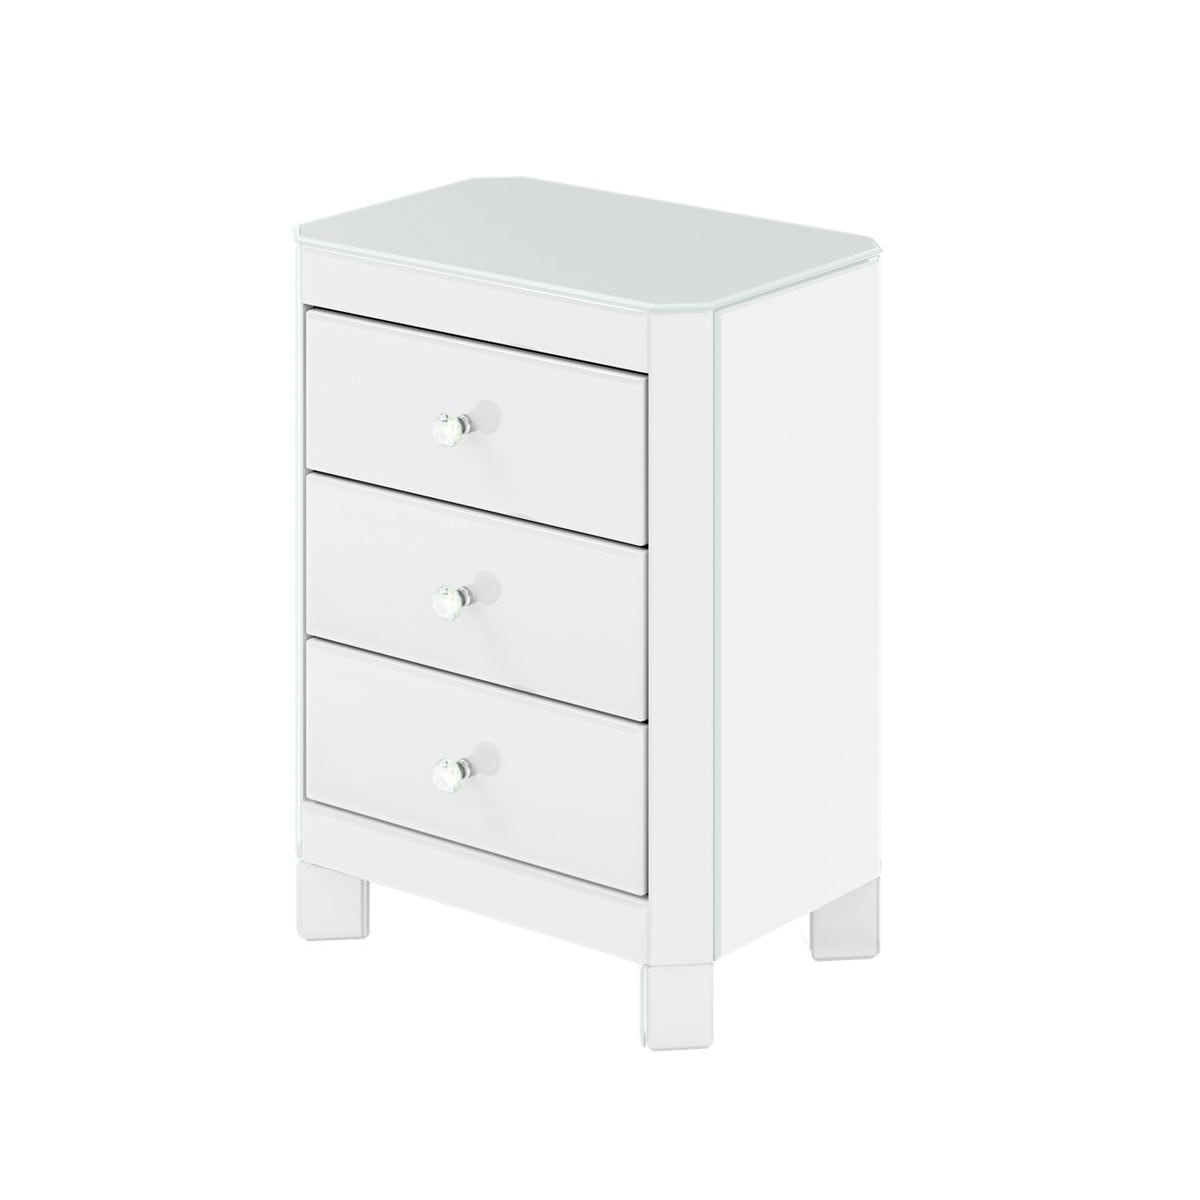 Paris White Glass 3 drawer bedside